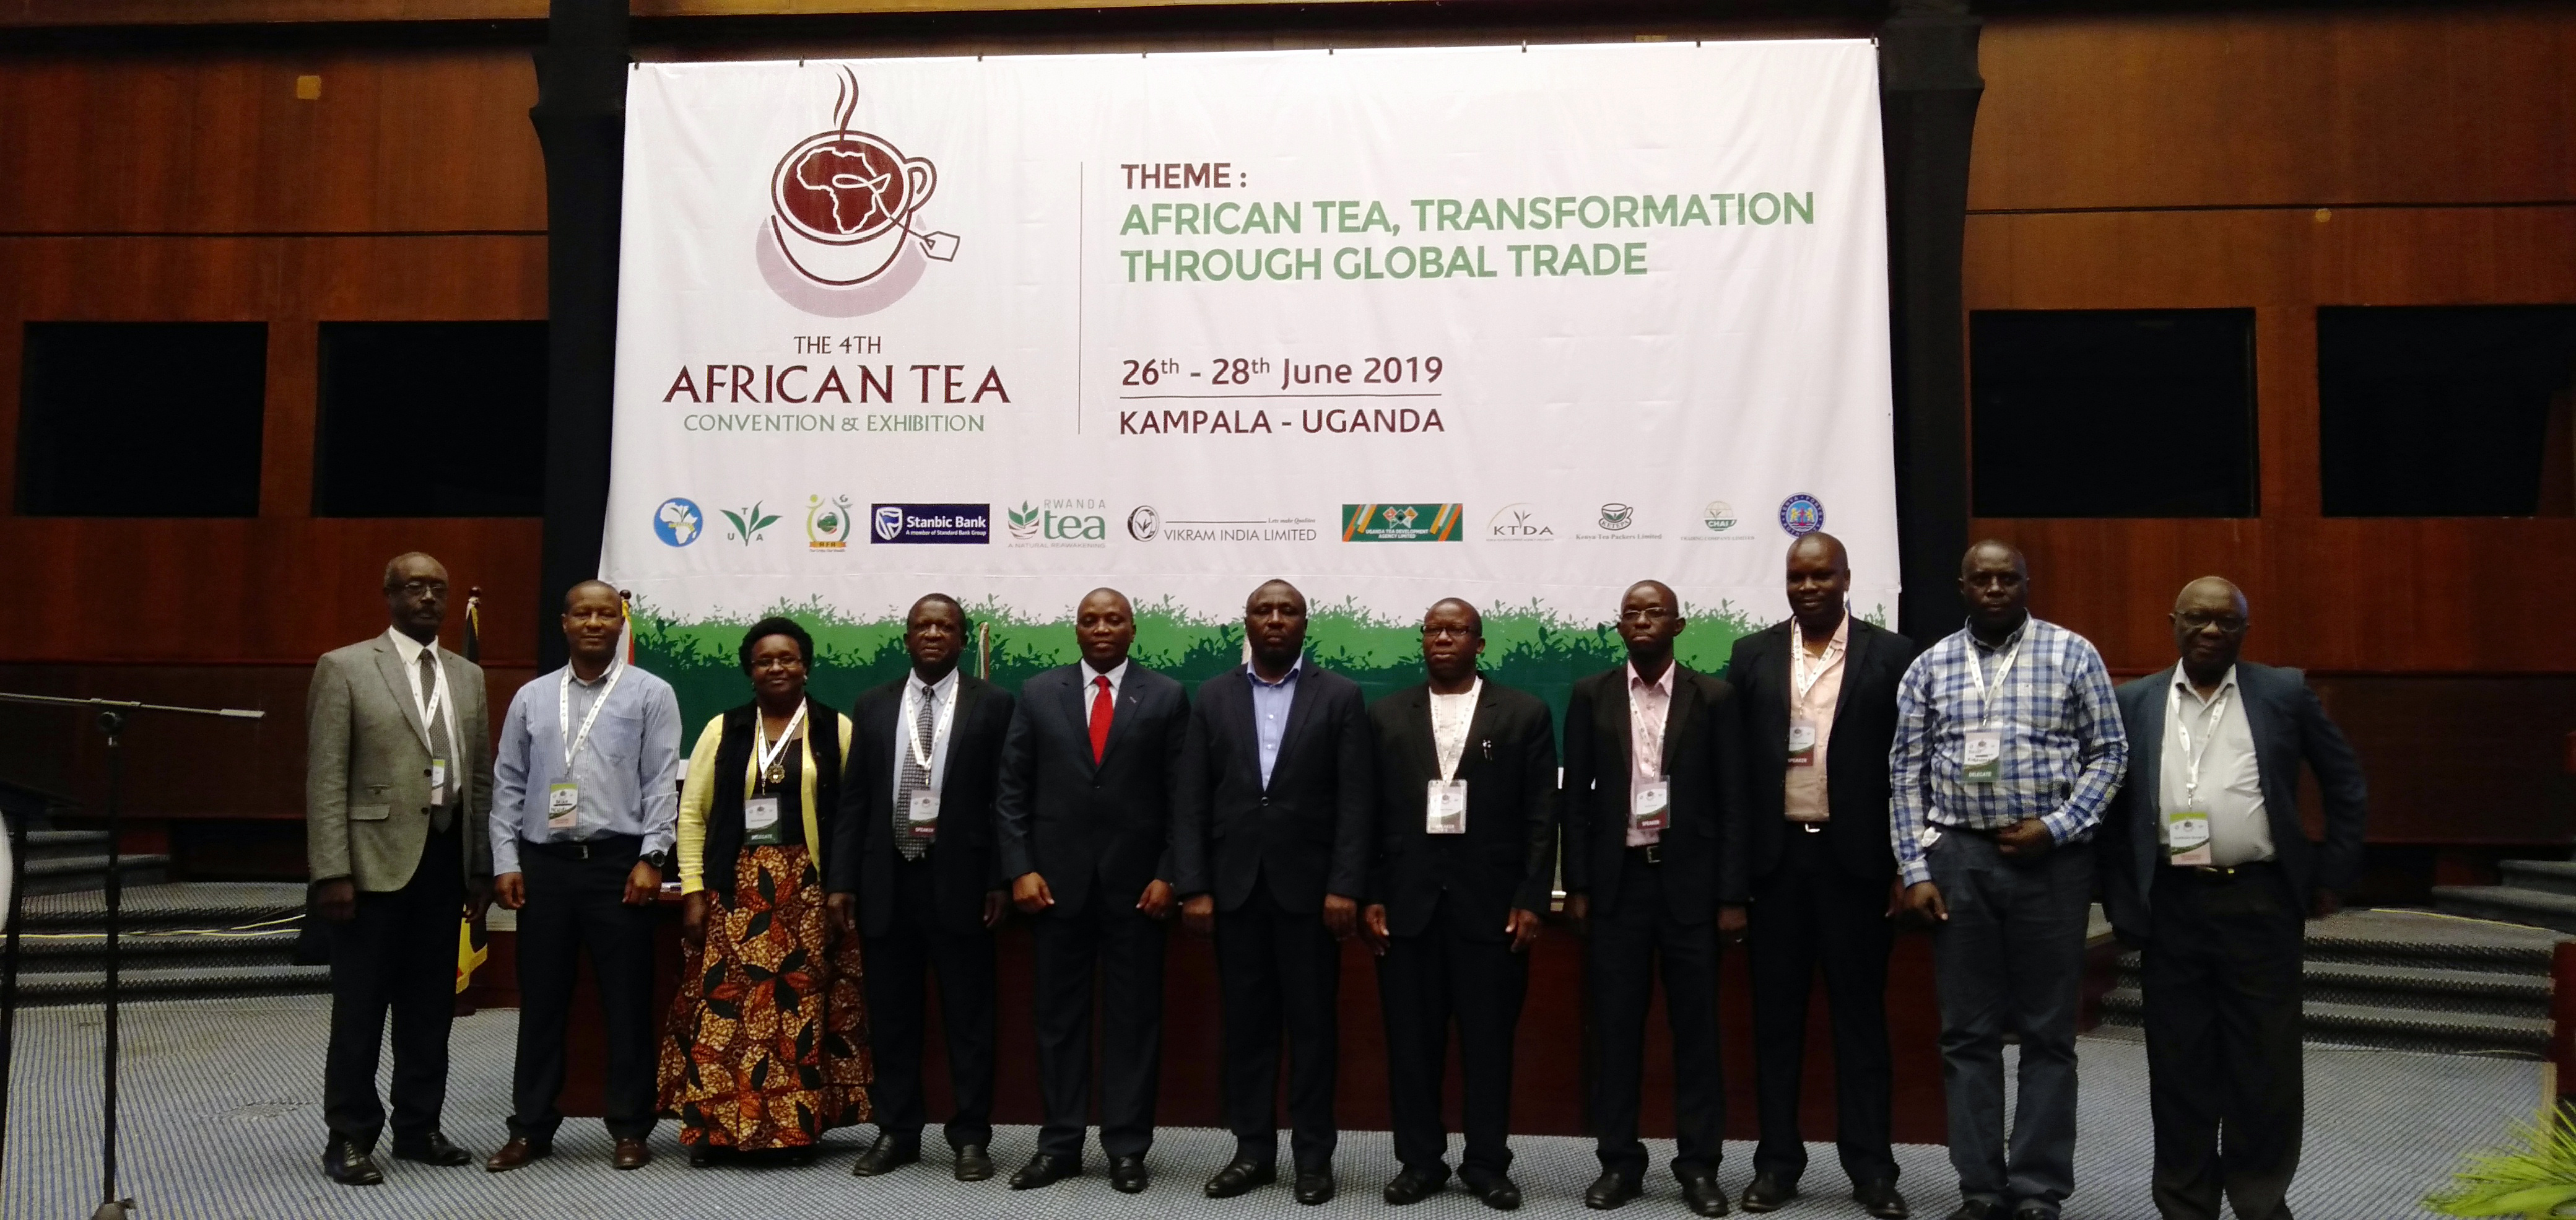 The 4th African Tea Convention and Exhibition: Opportunities